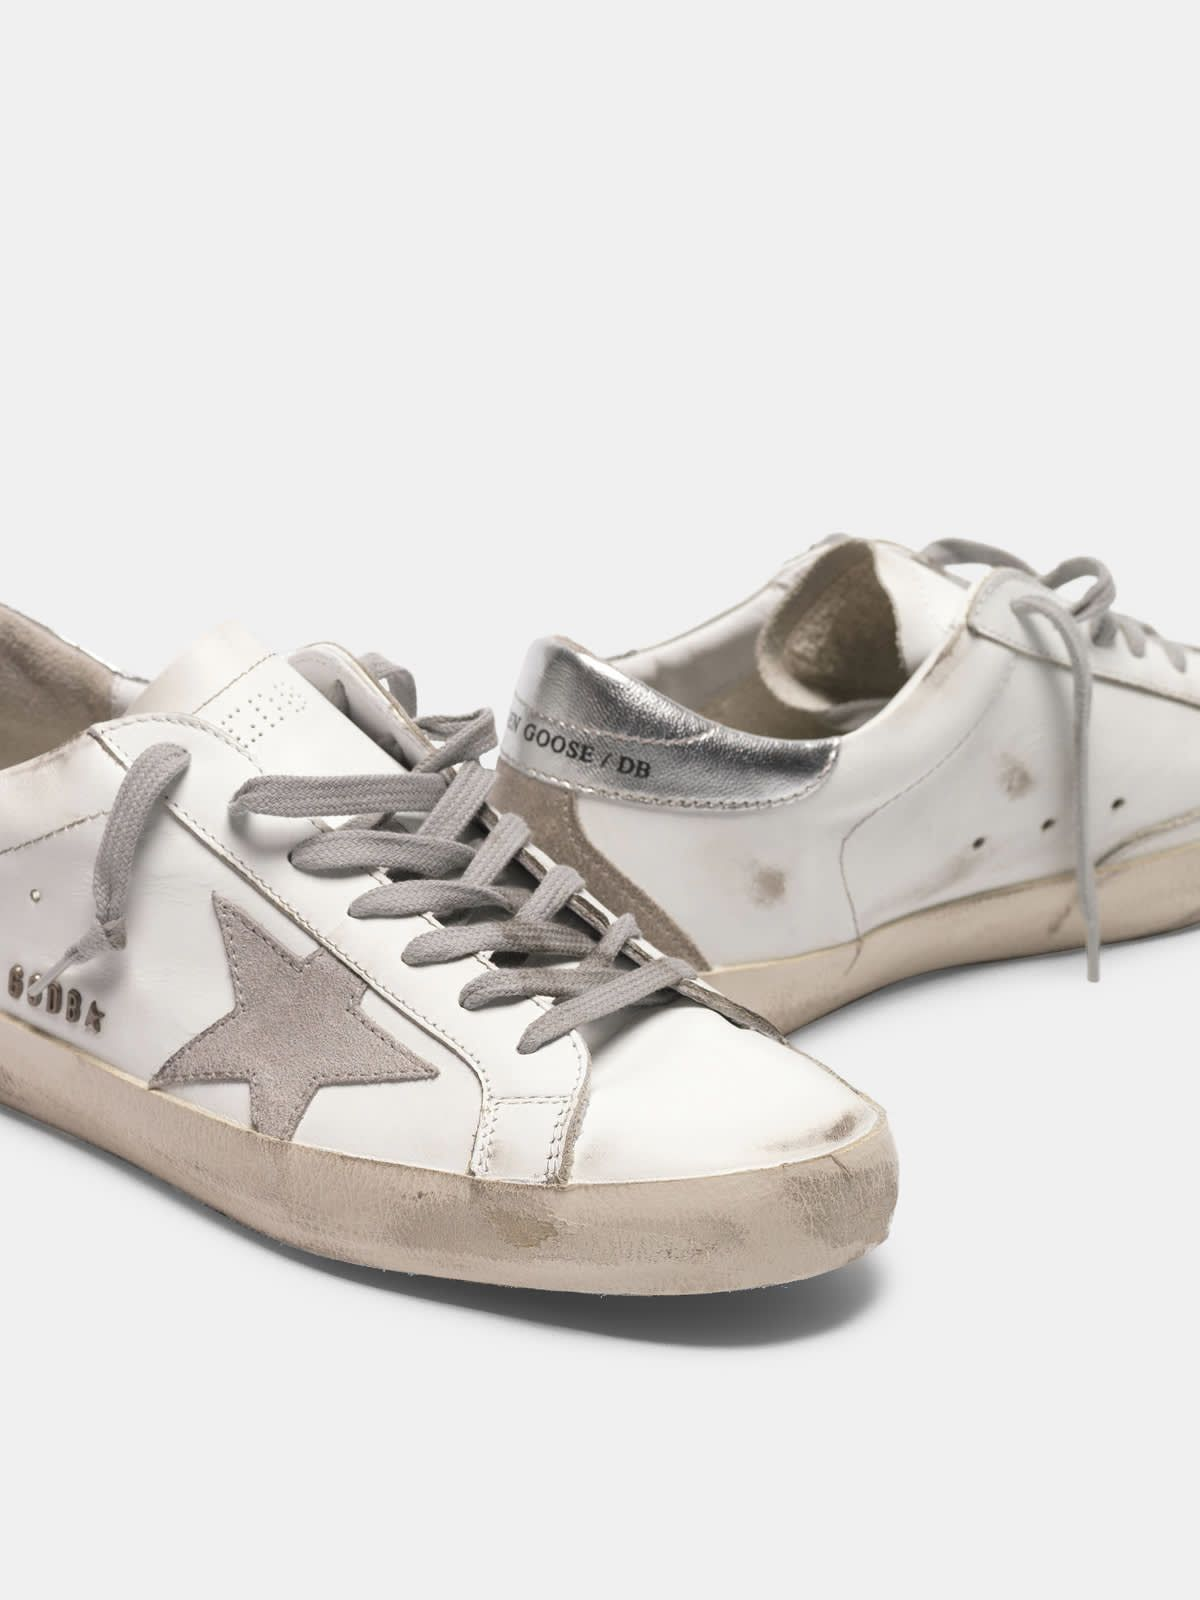 Super-Star sneakers with silver heel tab and metal stud lettering